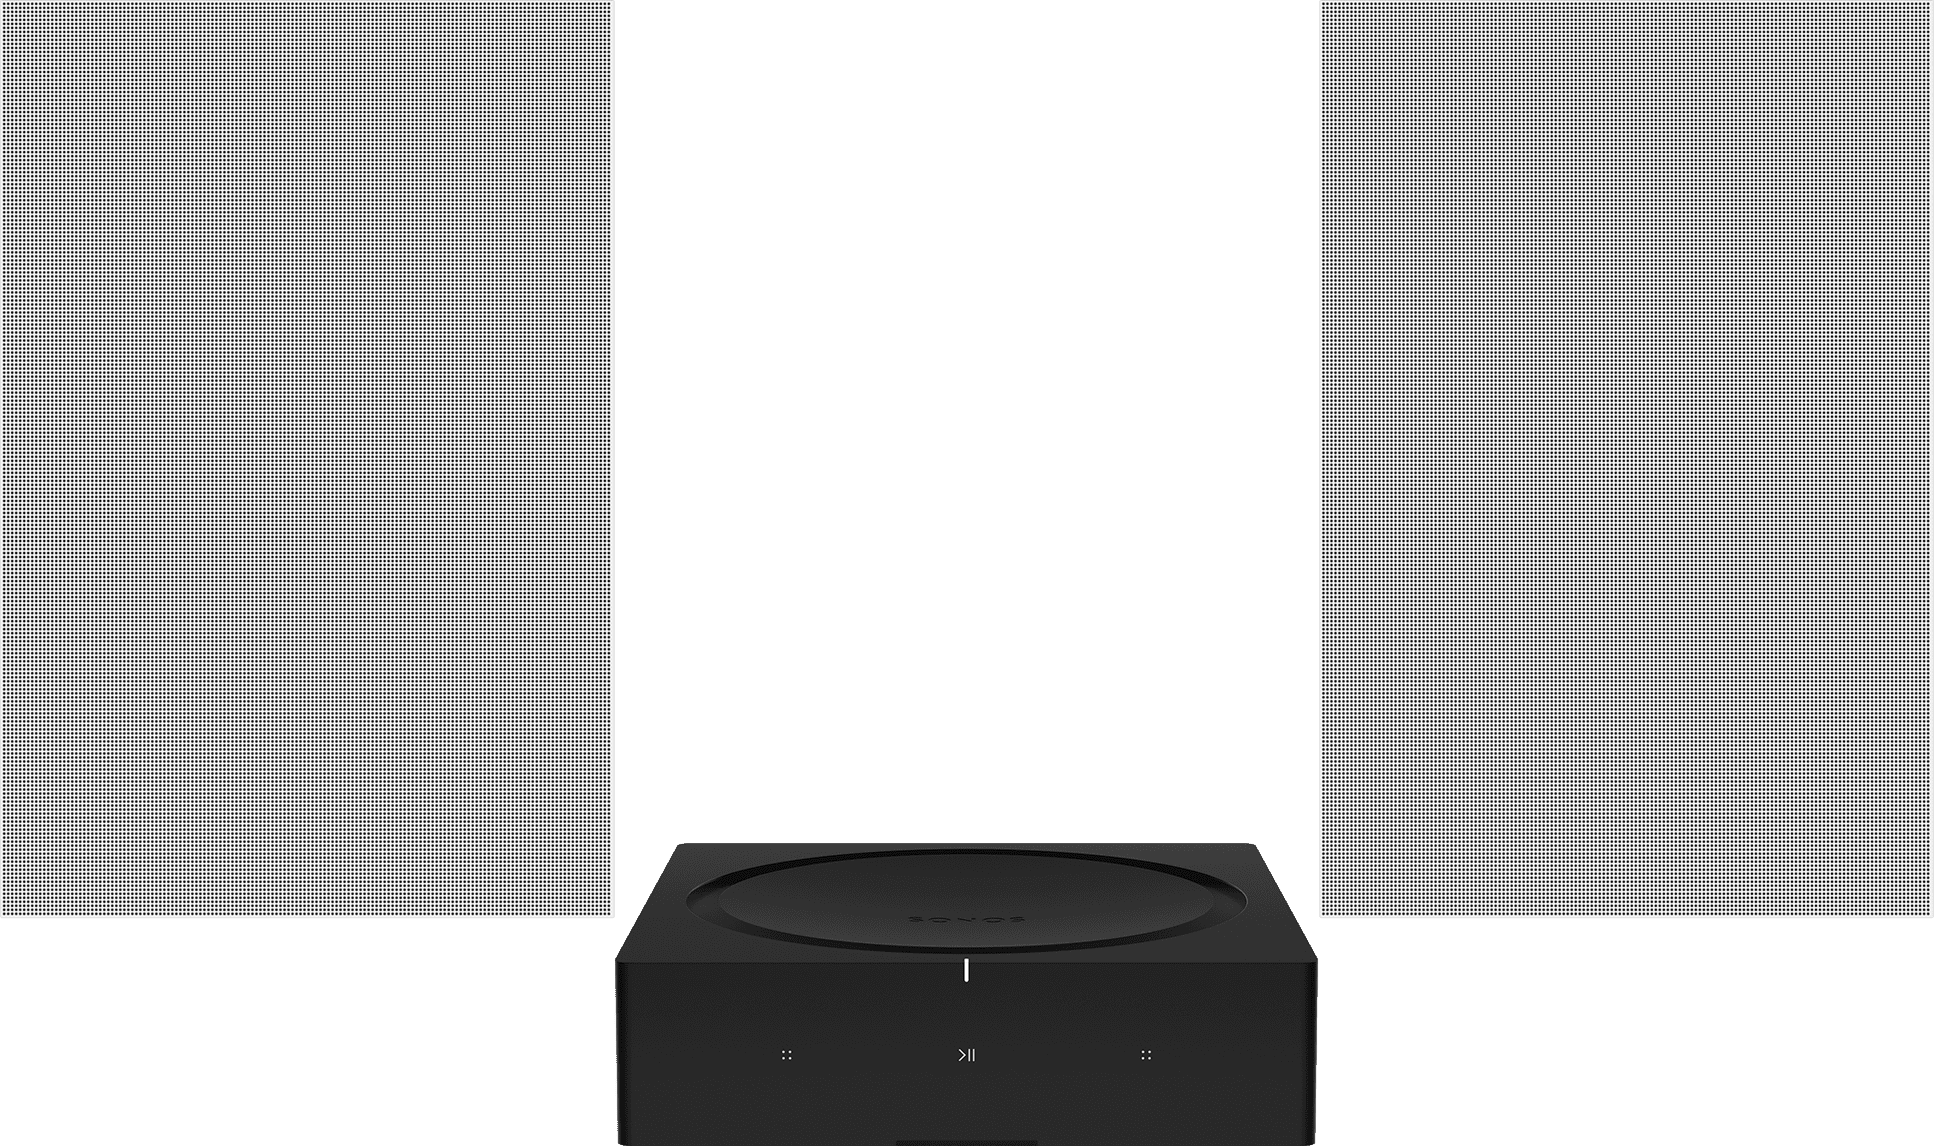 In-Wall Speakers & Amp Set - Architectural Speakers - Customizable Grilles - Sonos